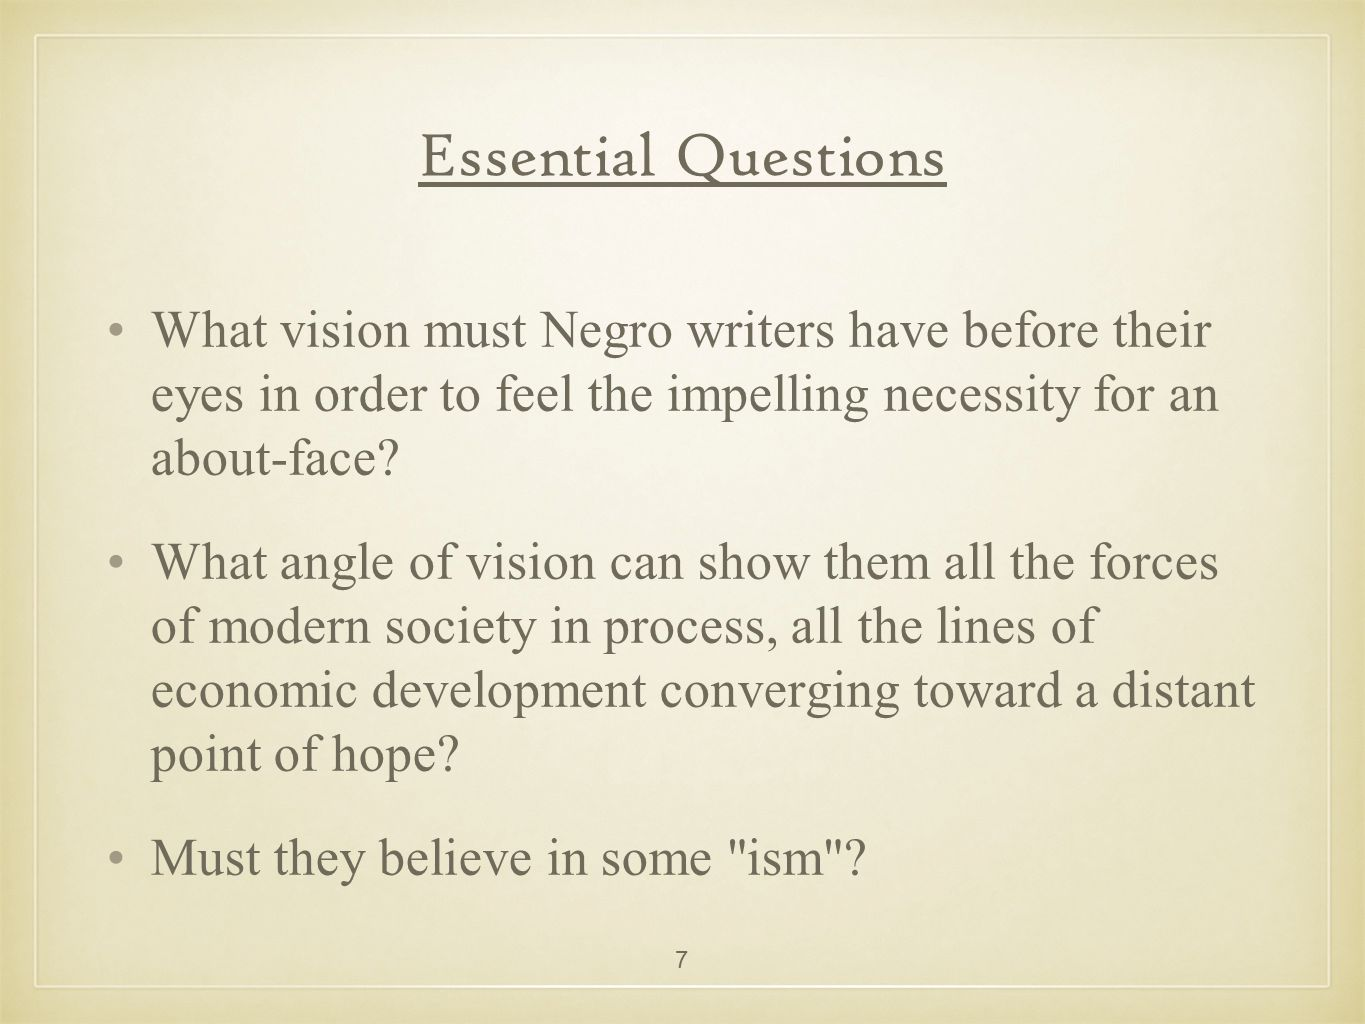 Essential Questions What vision must Negro writers have before their eyes in order to feel the impelling necessity for an about-face